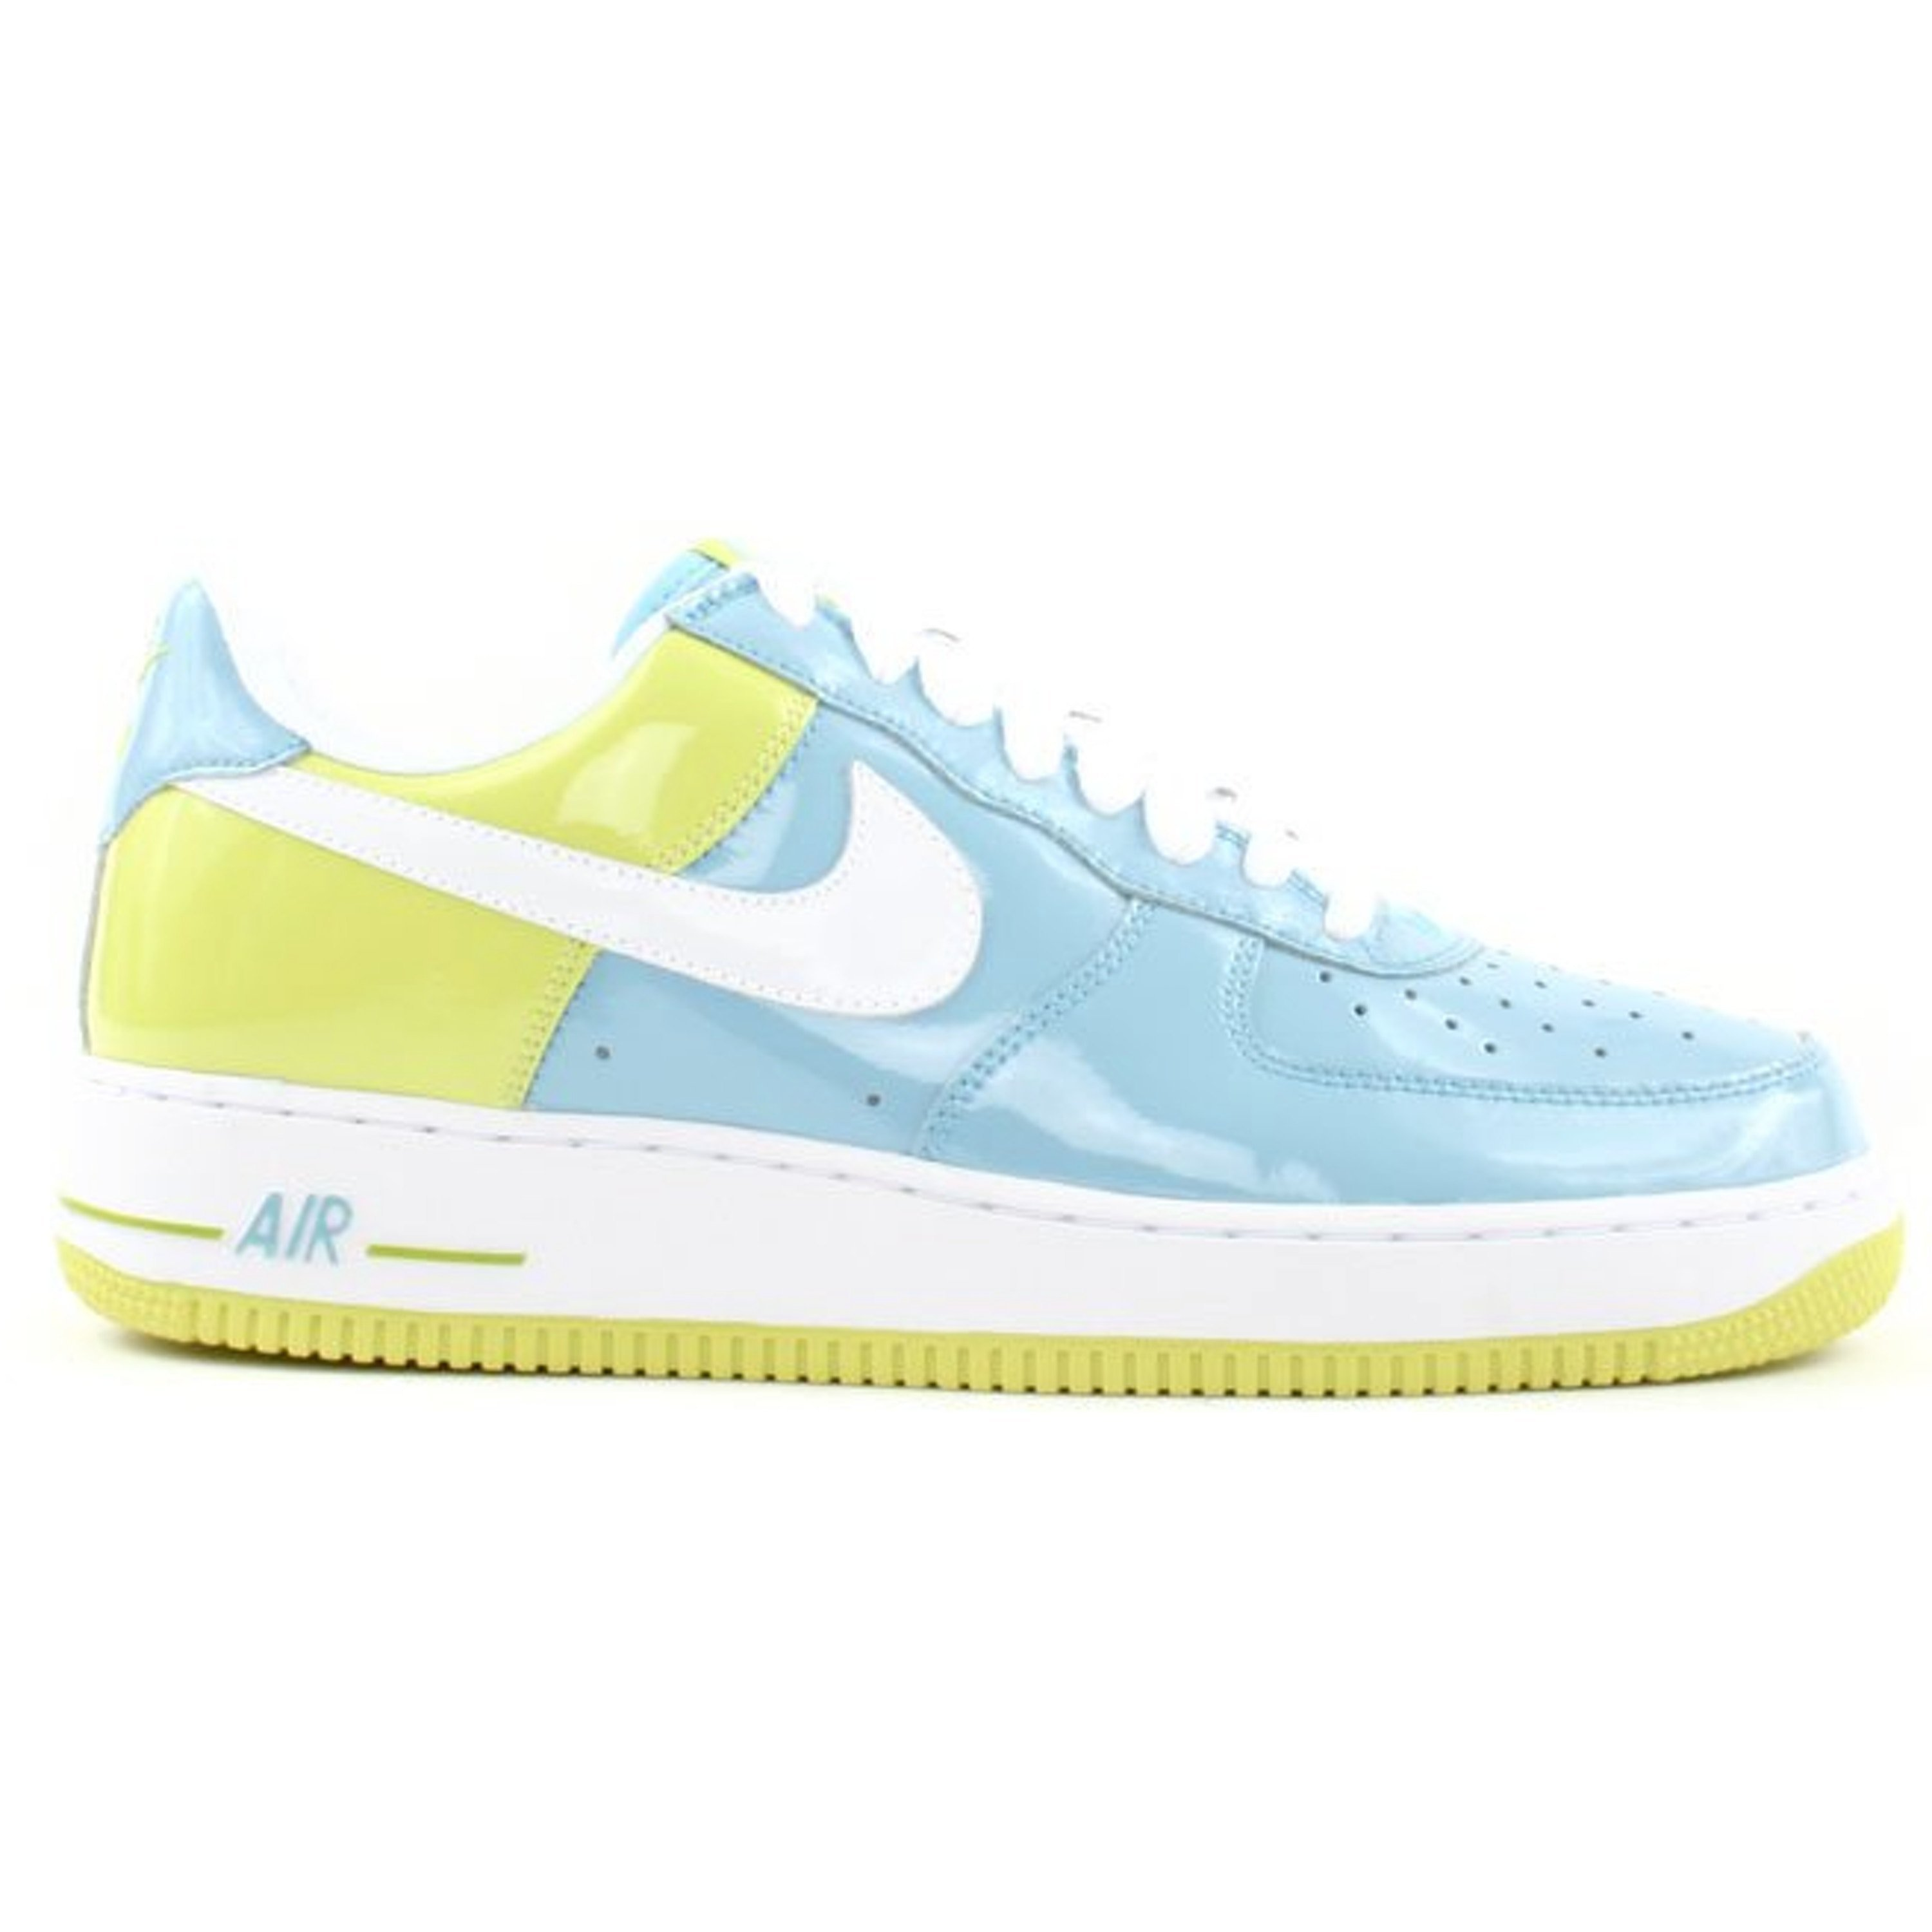 Nike Air Force 1 Low Pixie (312945-412)